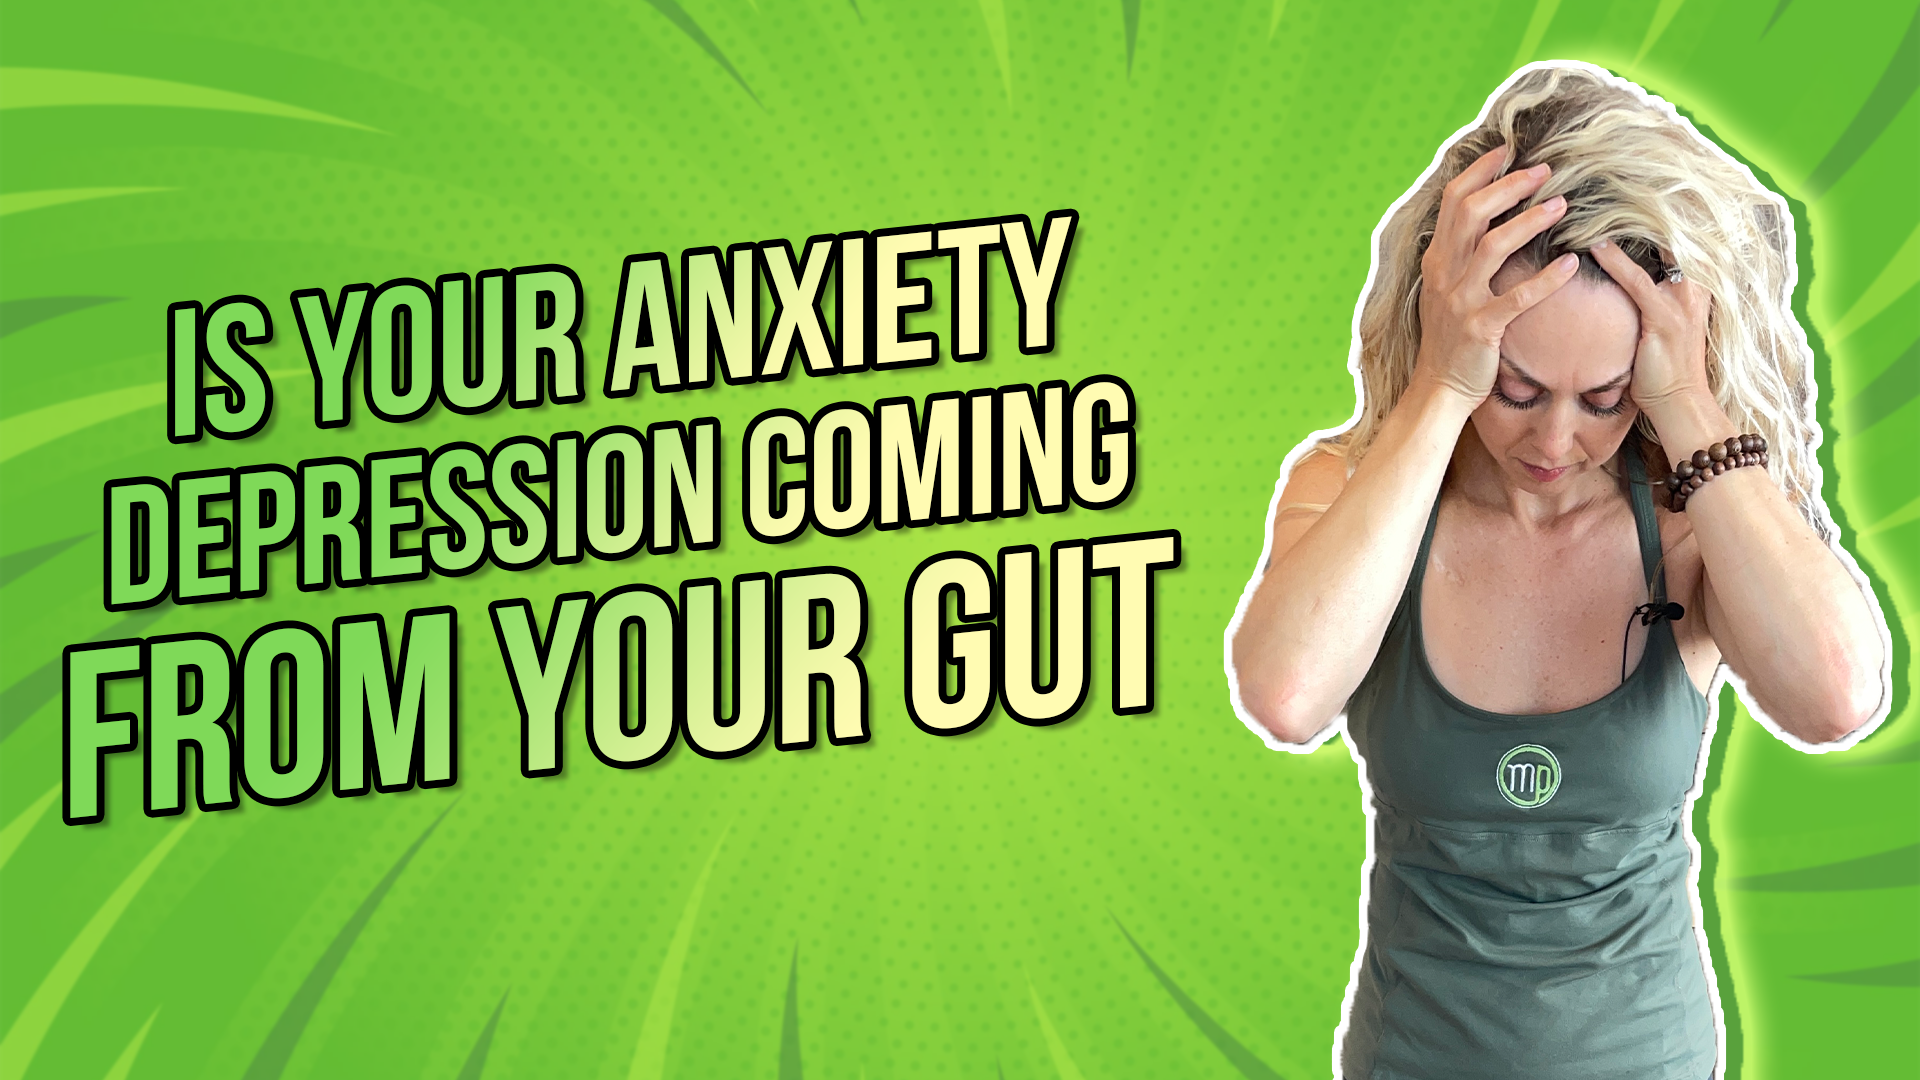 Is your anxiety or depression coming from your gut?